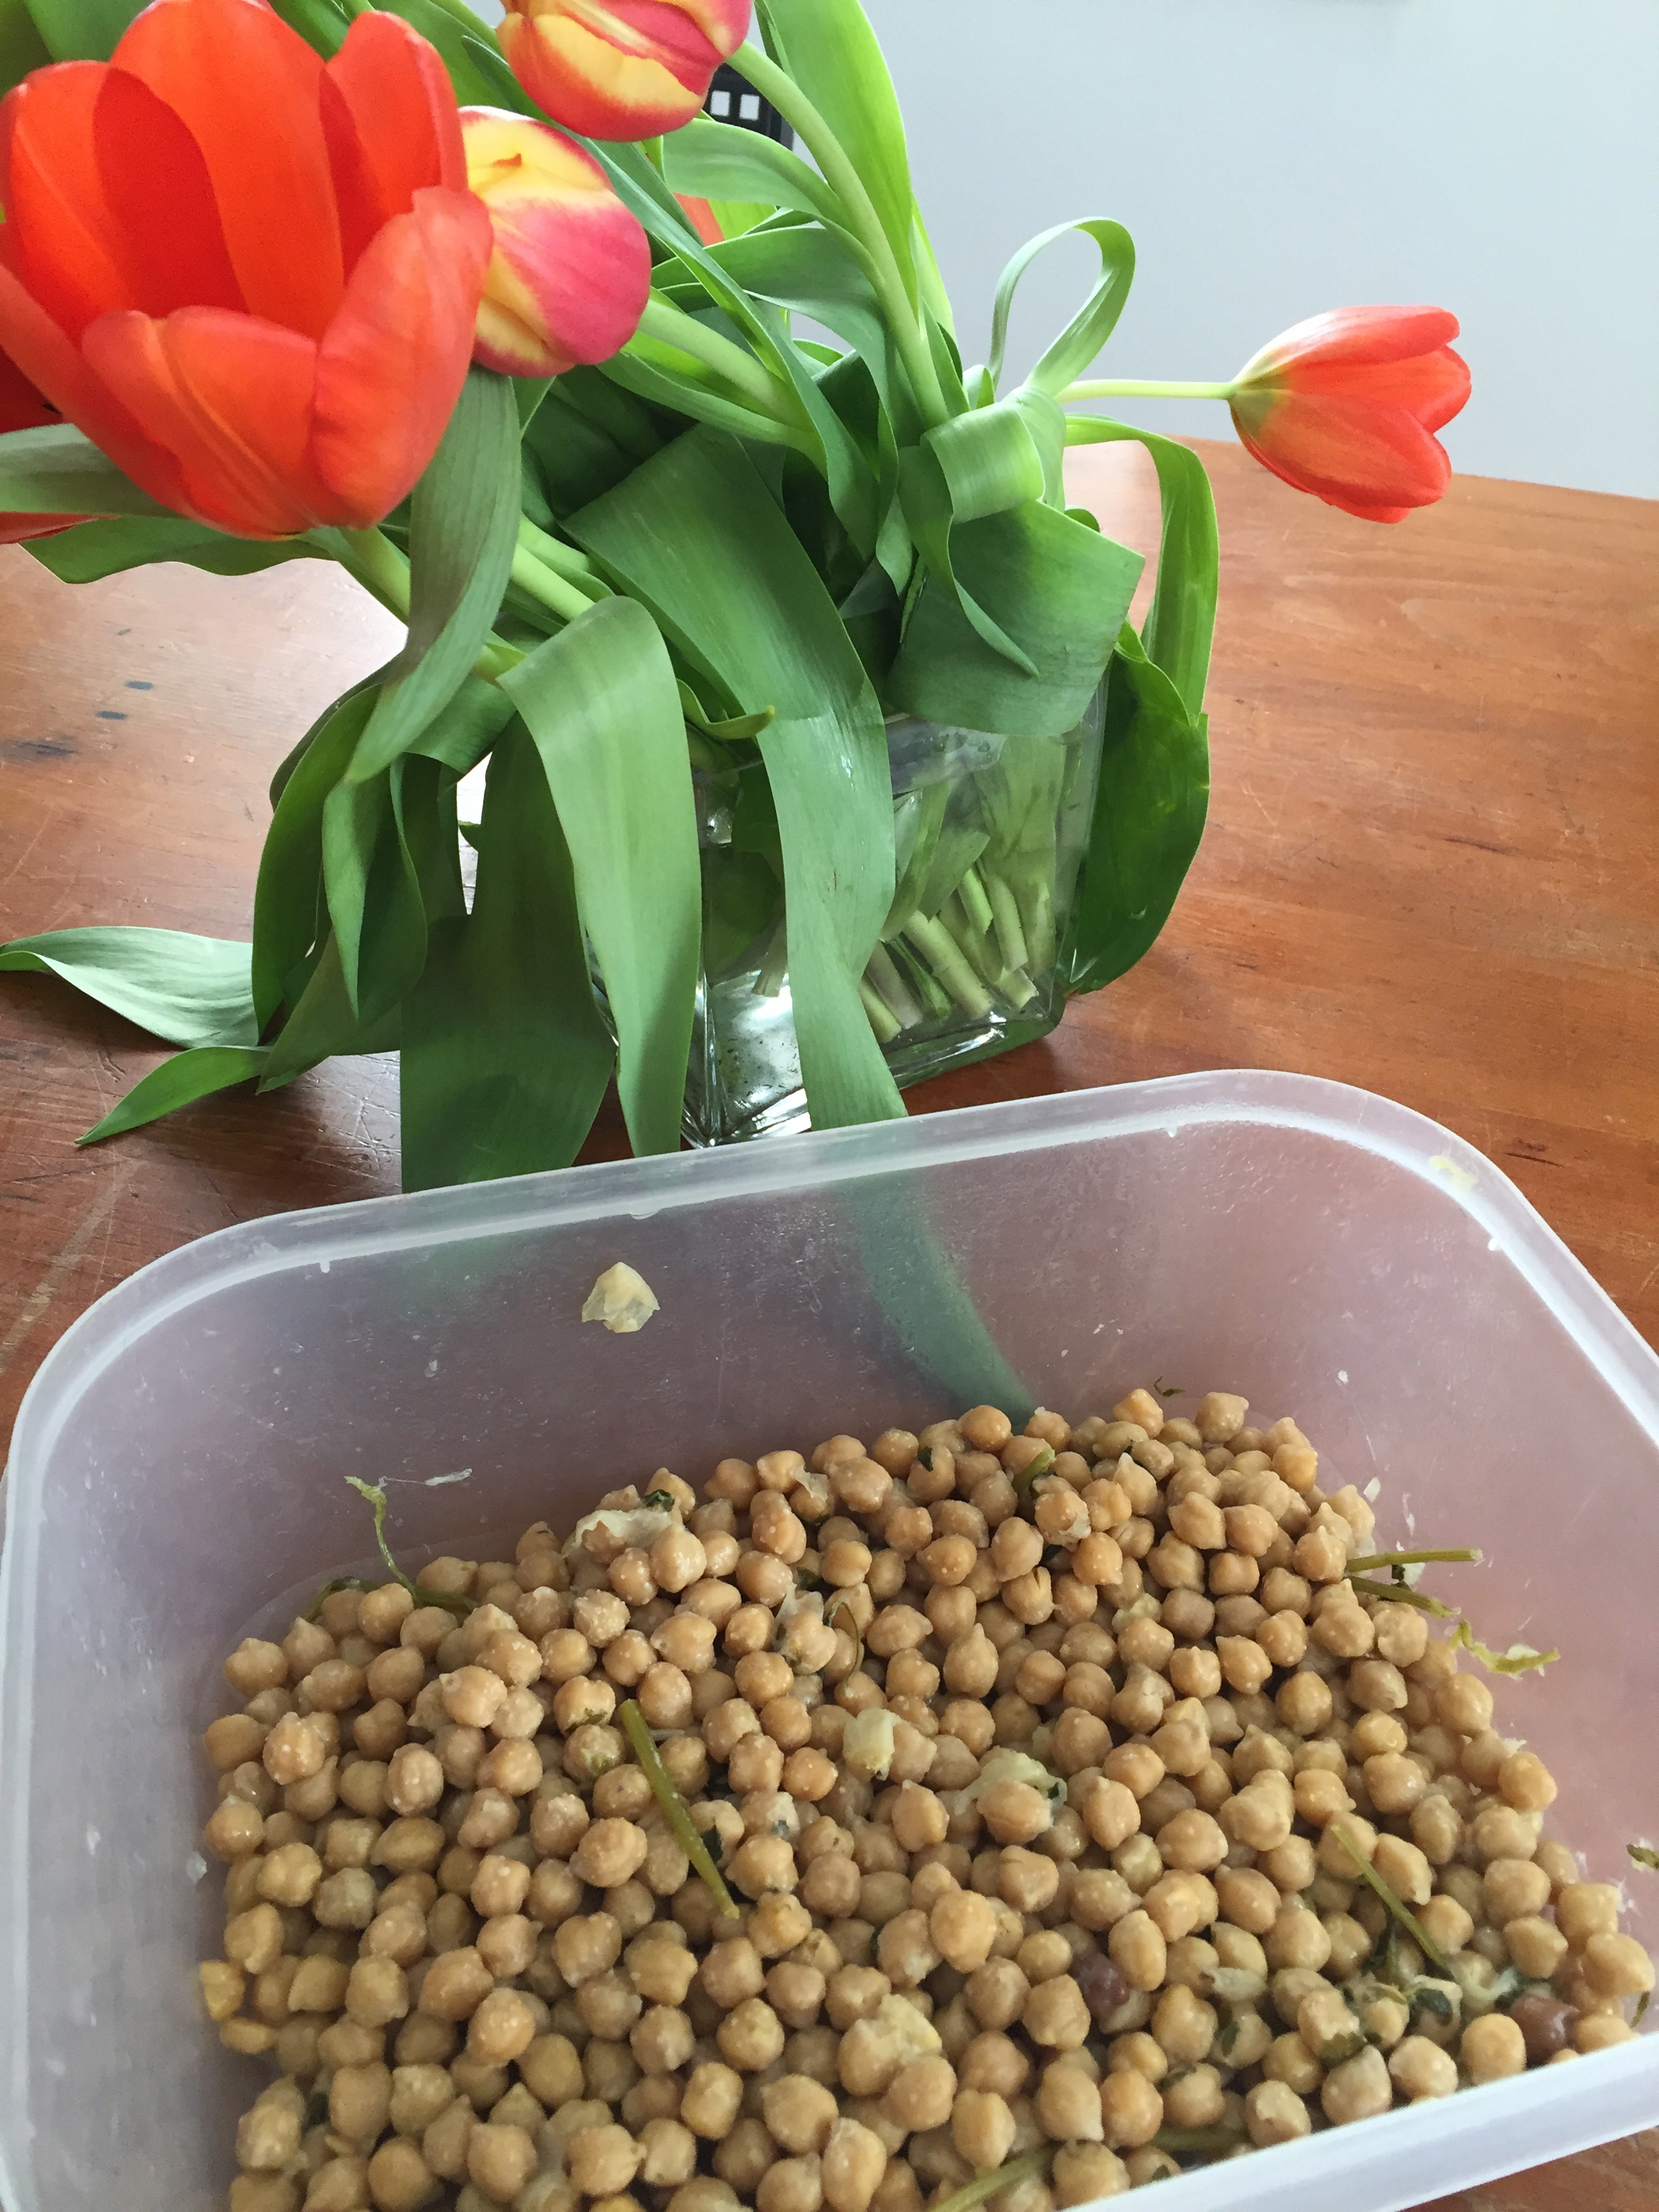 The chickpeas in the fridge smell awful. I decide that it is not something that needs to stay in the fridge. As I pass the tulips on the way to the compost I put down the chickpeas and smell them both. I prefer the smell of the tulips. But after spending quite some time with this, it does not seem to make a difference - though perhaps I have just grown accustom to the sour smell of the chickpeas.